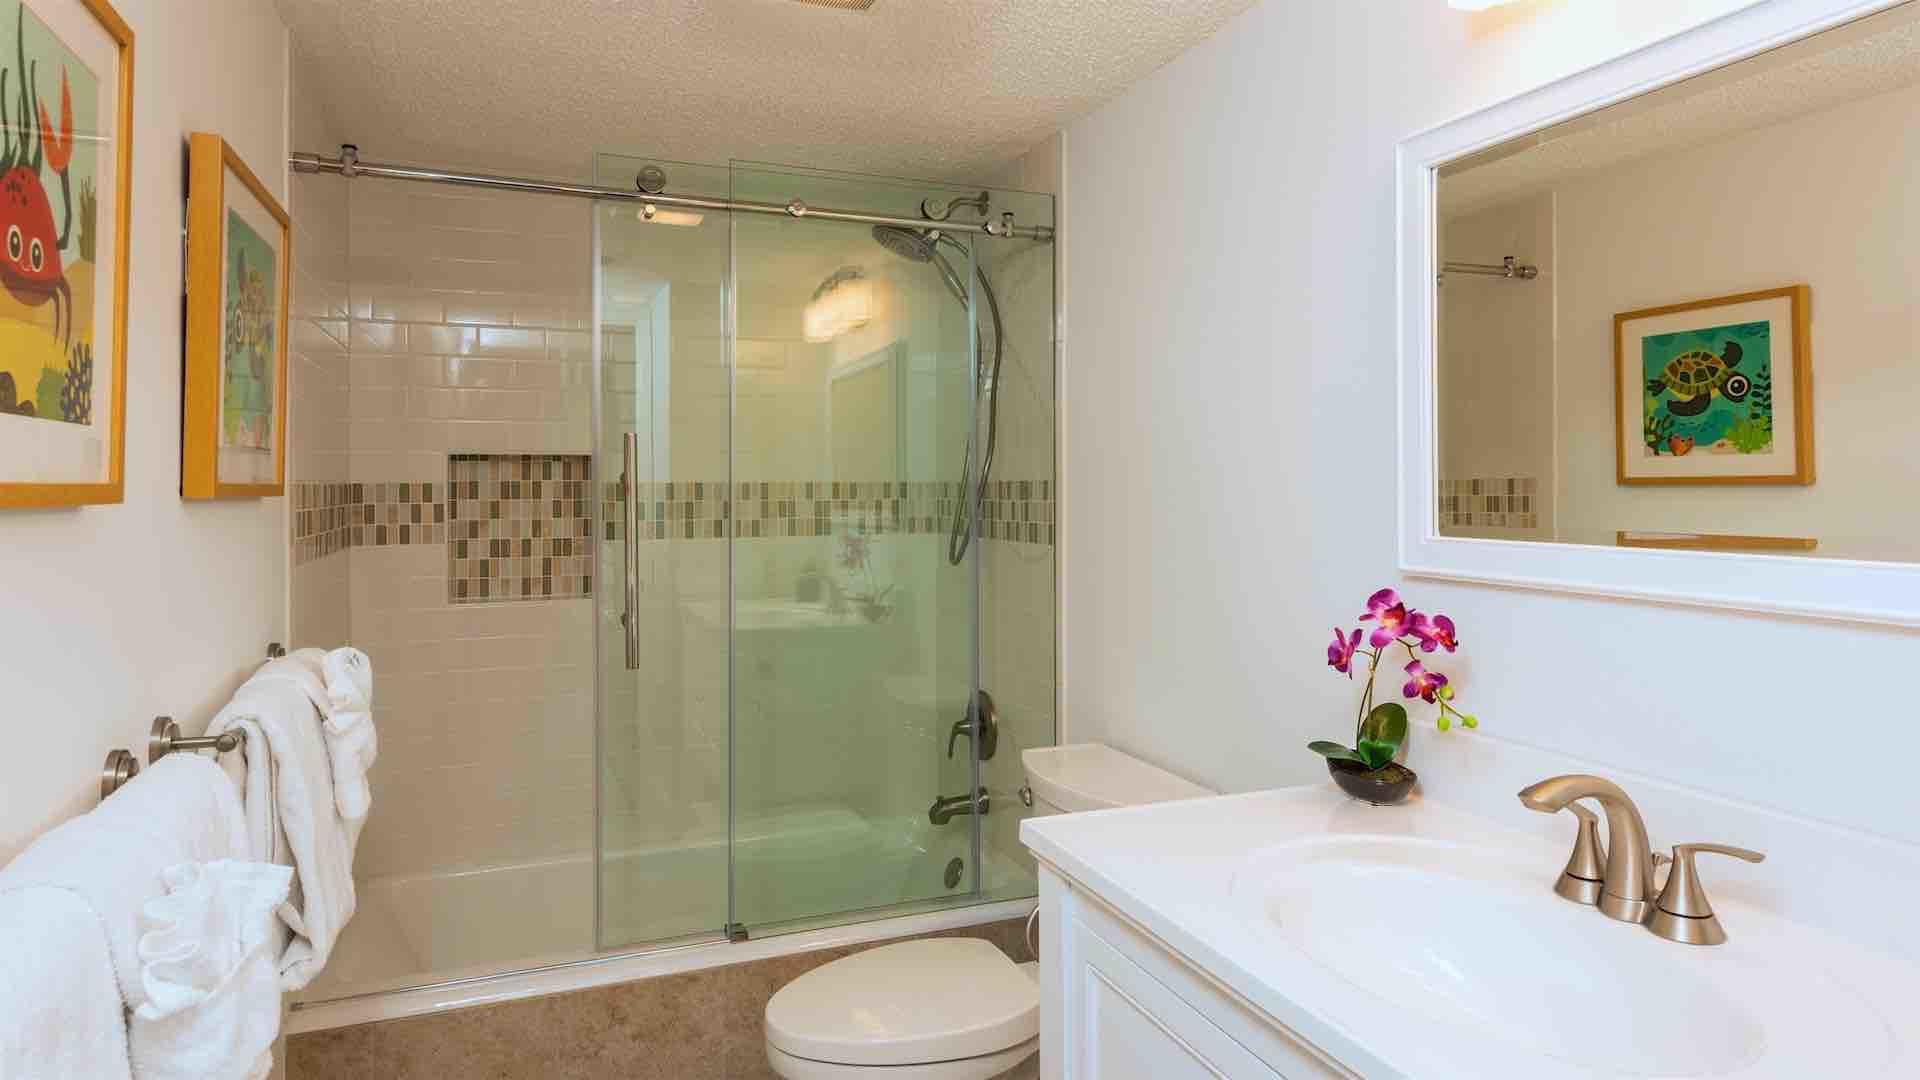 The second bathroom is across the hall and has a beautiful large custom shower..